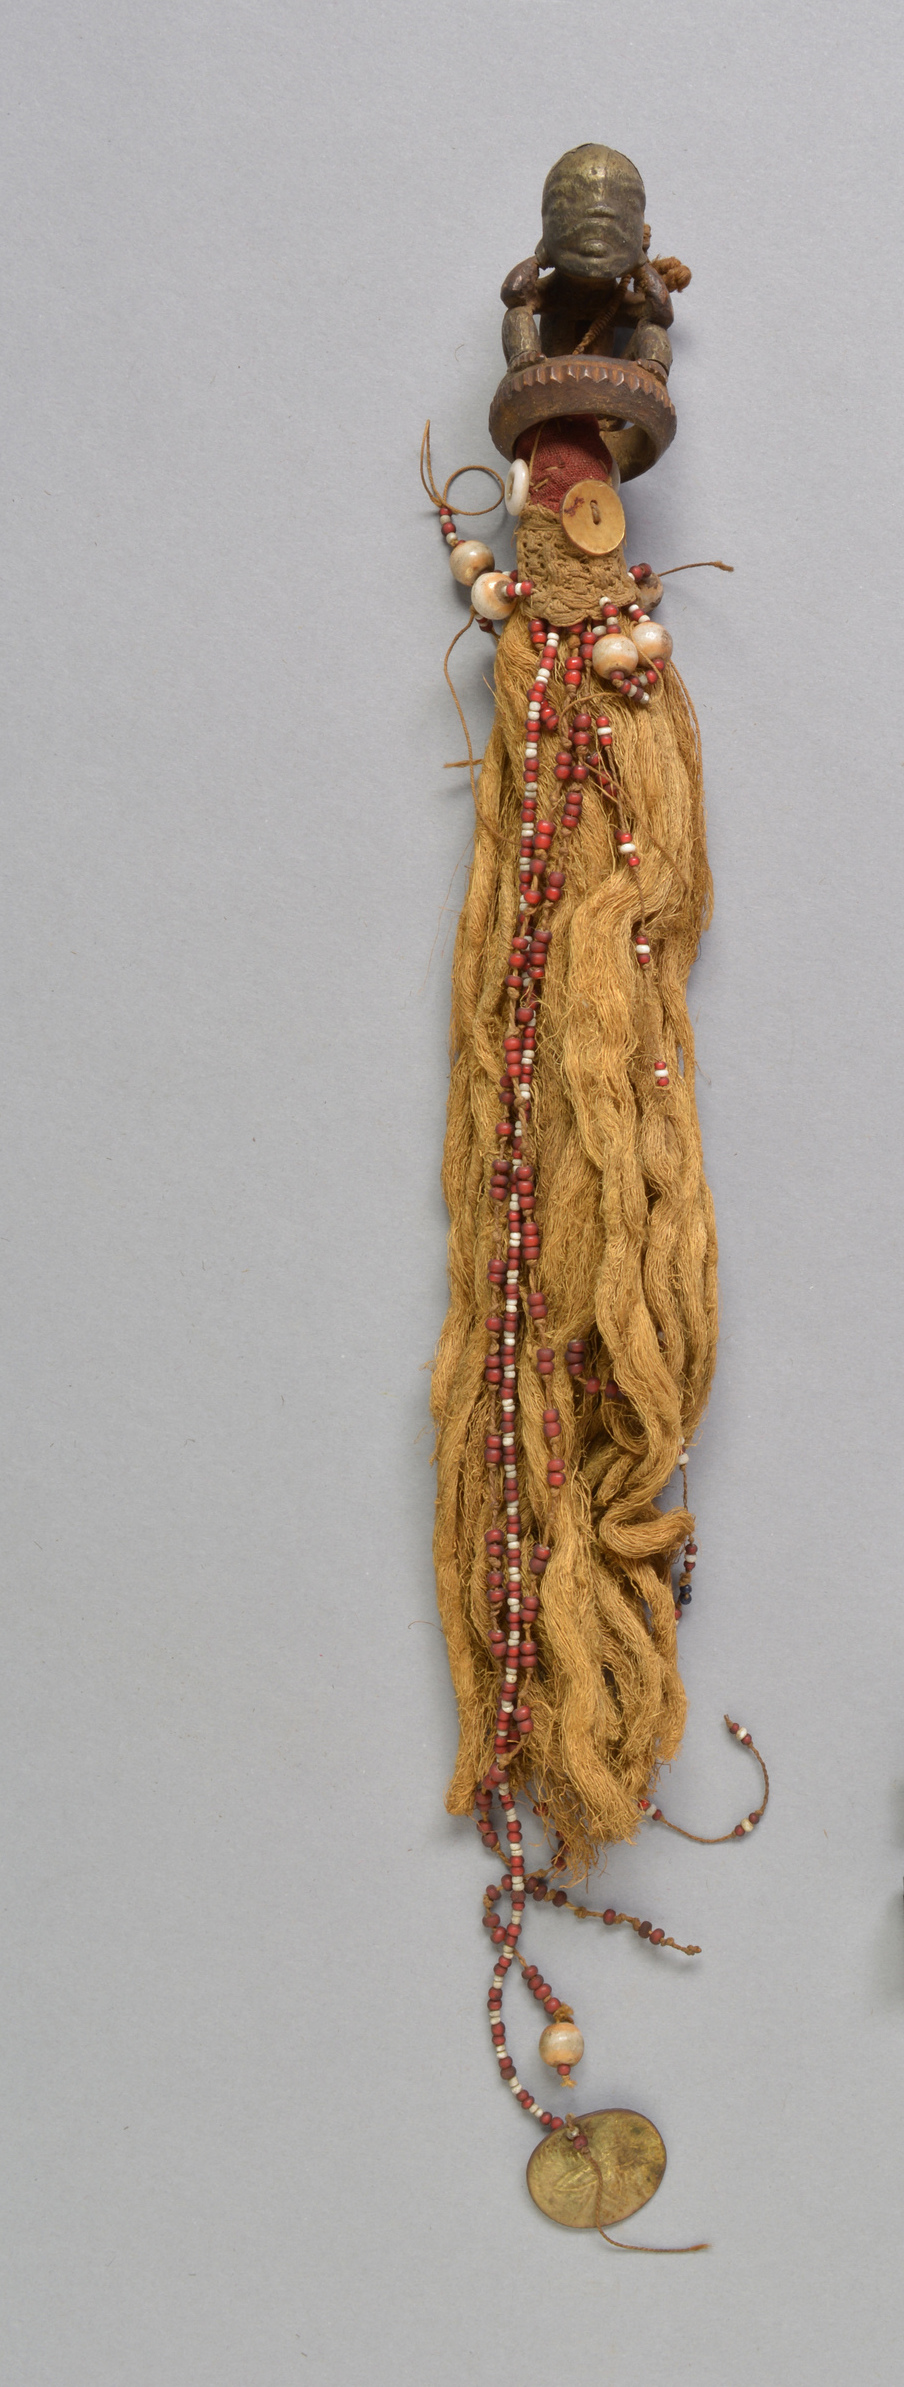 Charm | Enggano © University of Pennsylvania Museum of Archaeology and Anthropology